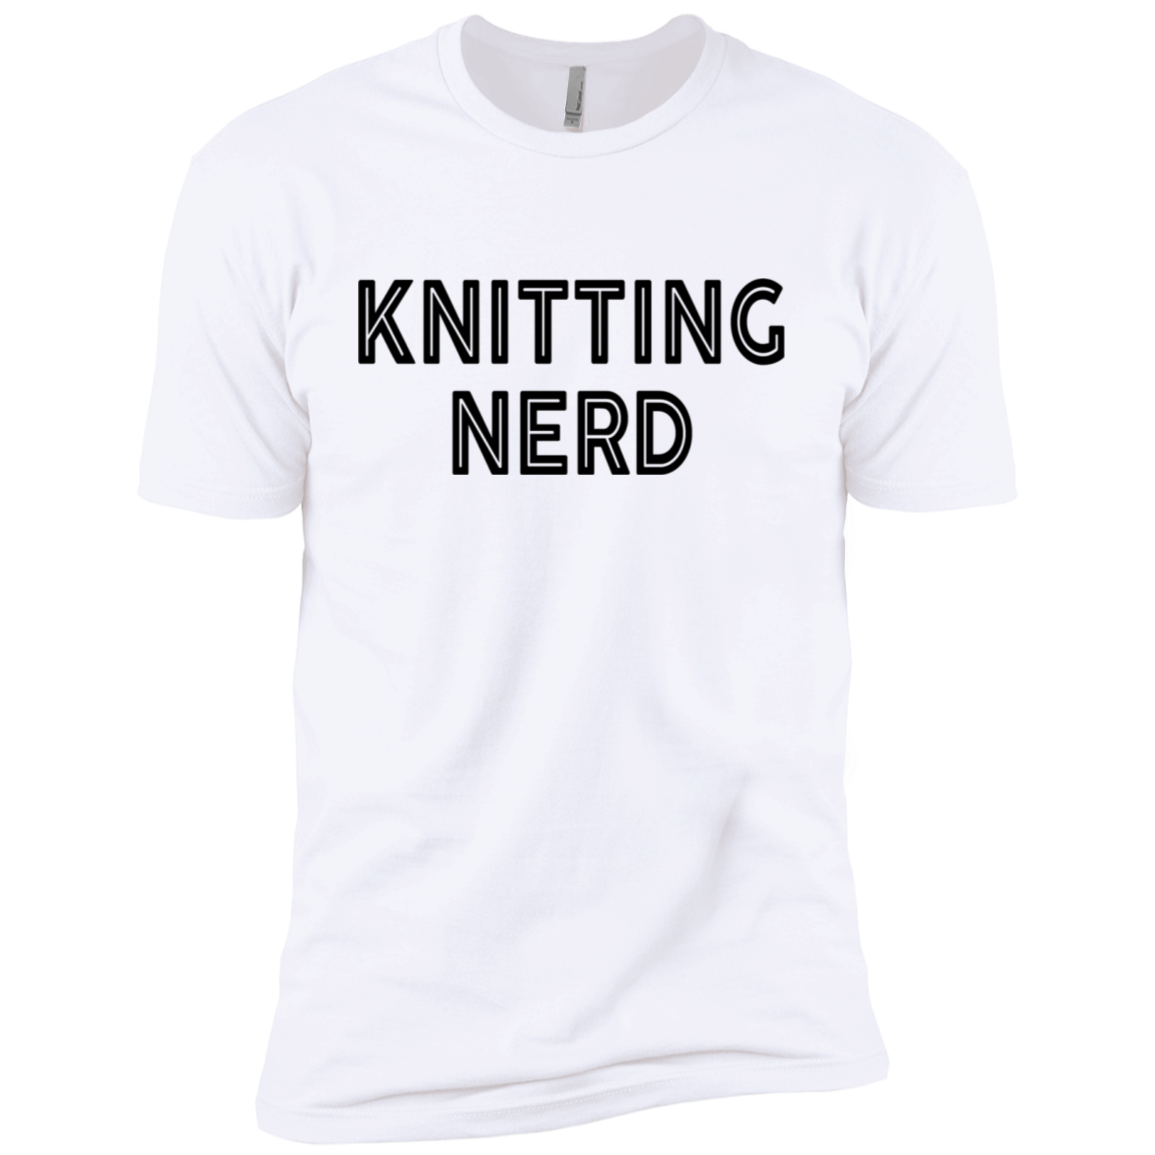 Knitting Nerd Men's Classic Tee